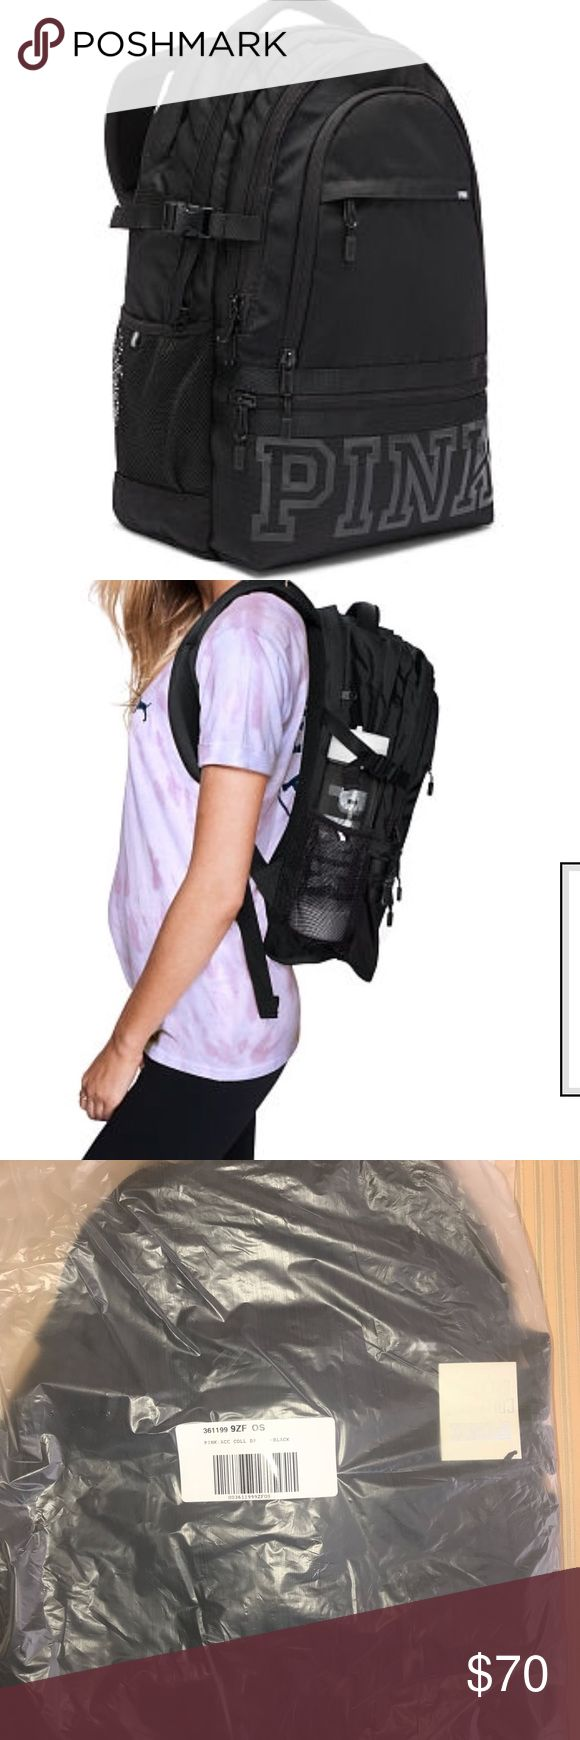 🆕Just Added Pink Victorias Secret Backpack :With more pockets and sturdier straps than your average bag, this backpack is a go-to for all your off campus adventures  Padded straps with mesh overlay for breathability Adjustable side compression straps for added support Durable, reinforced bottom panel  Zippered padded laptop sleeve fits 17'' laptop Three exterior pockets Two interior mesh pockets Mesh side pockets with adjustable elastic—perfect for water bottles! Sturdy, extra padded haul…